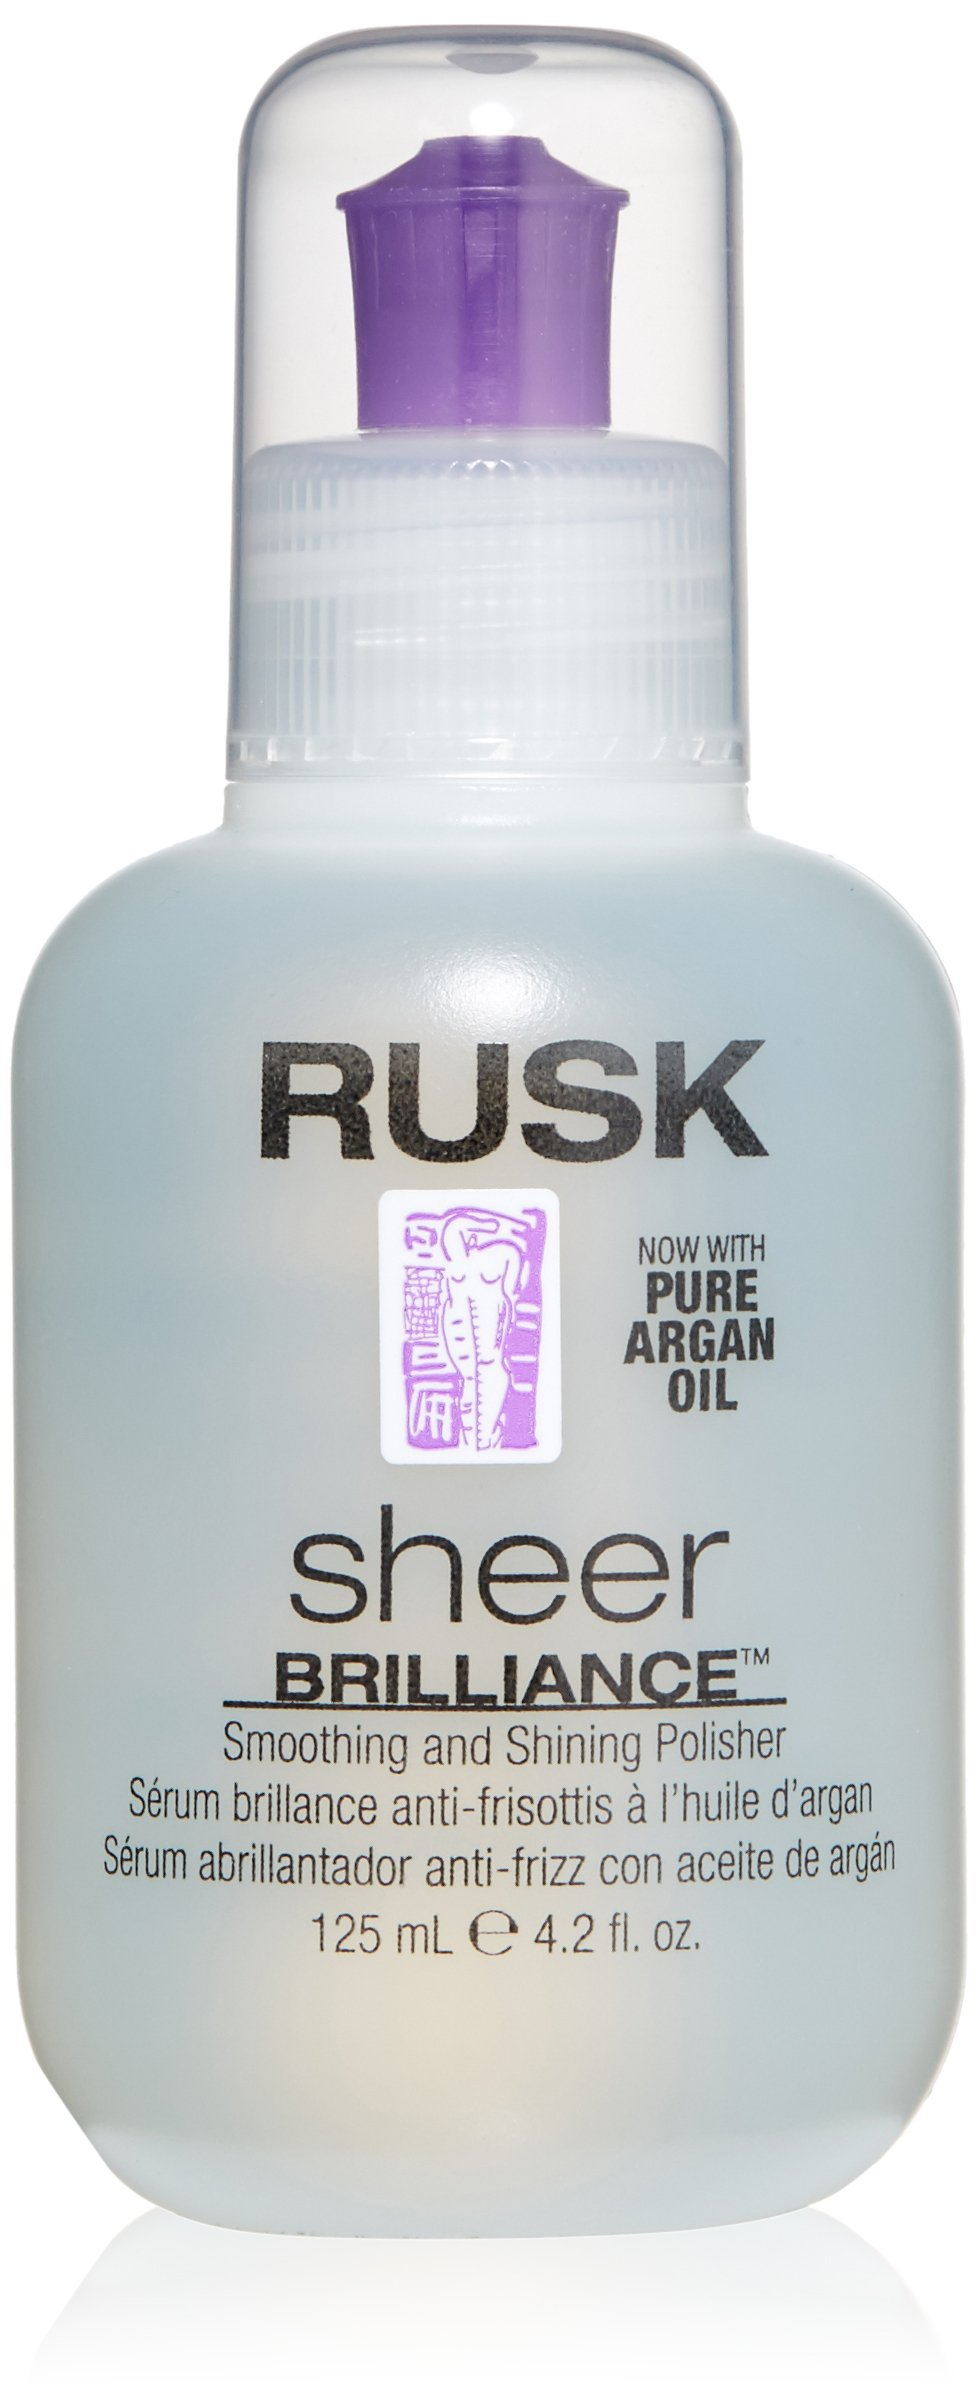 RUSK Designer Collection Sheer Brilliance Smoothing and Shining Polisher with Argan Oil